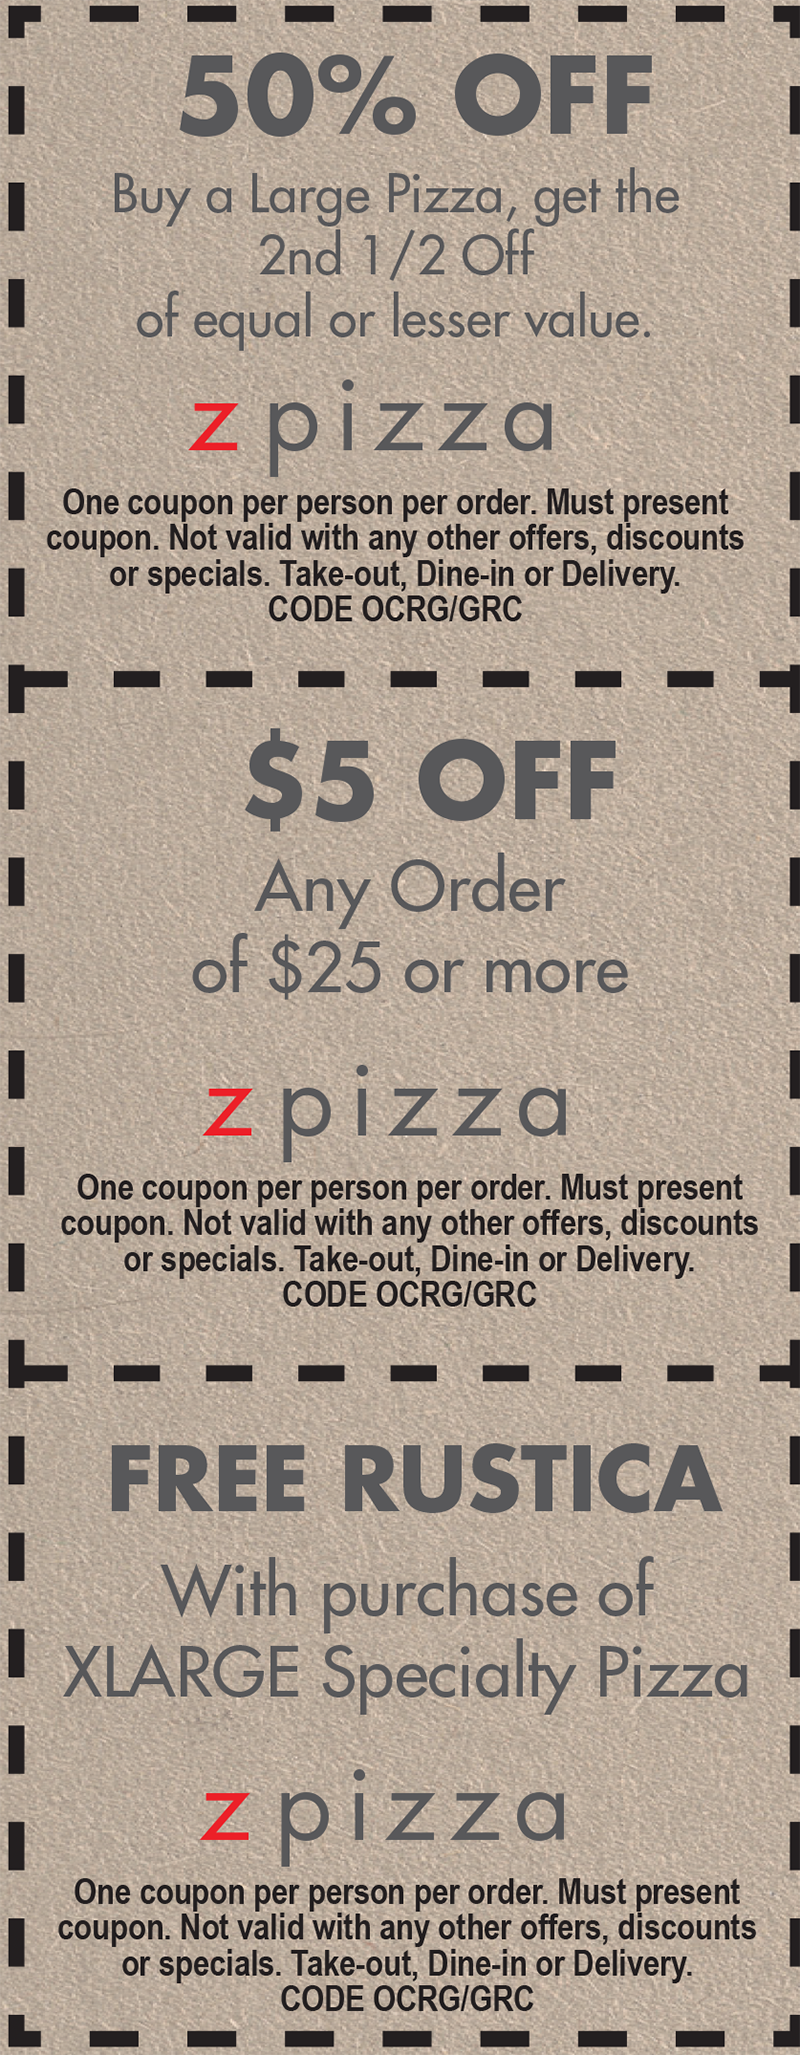 z pizza coupon code